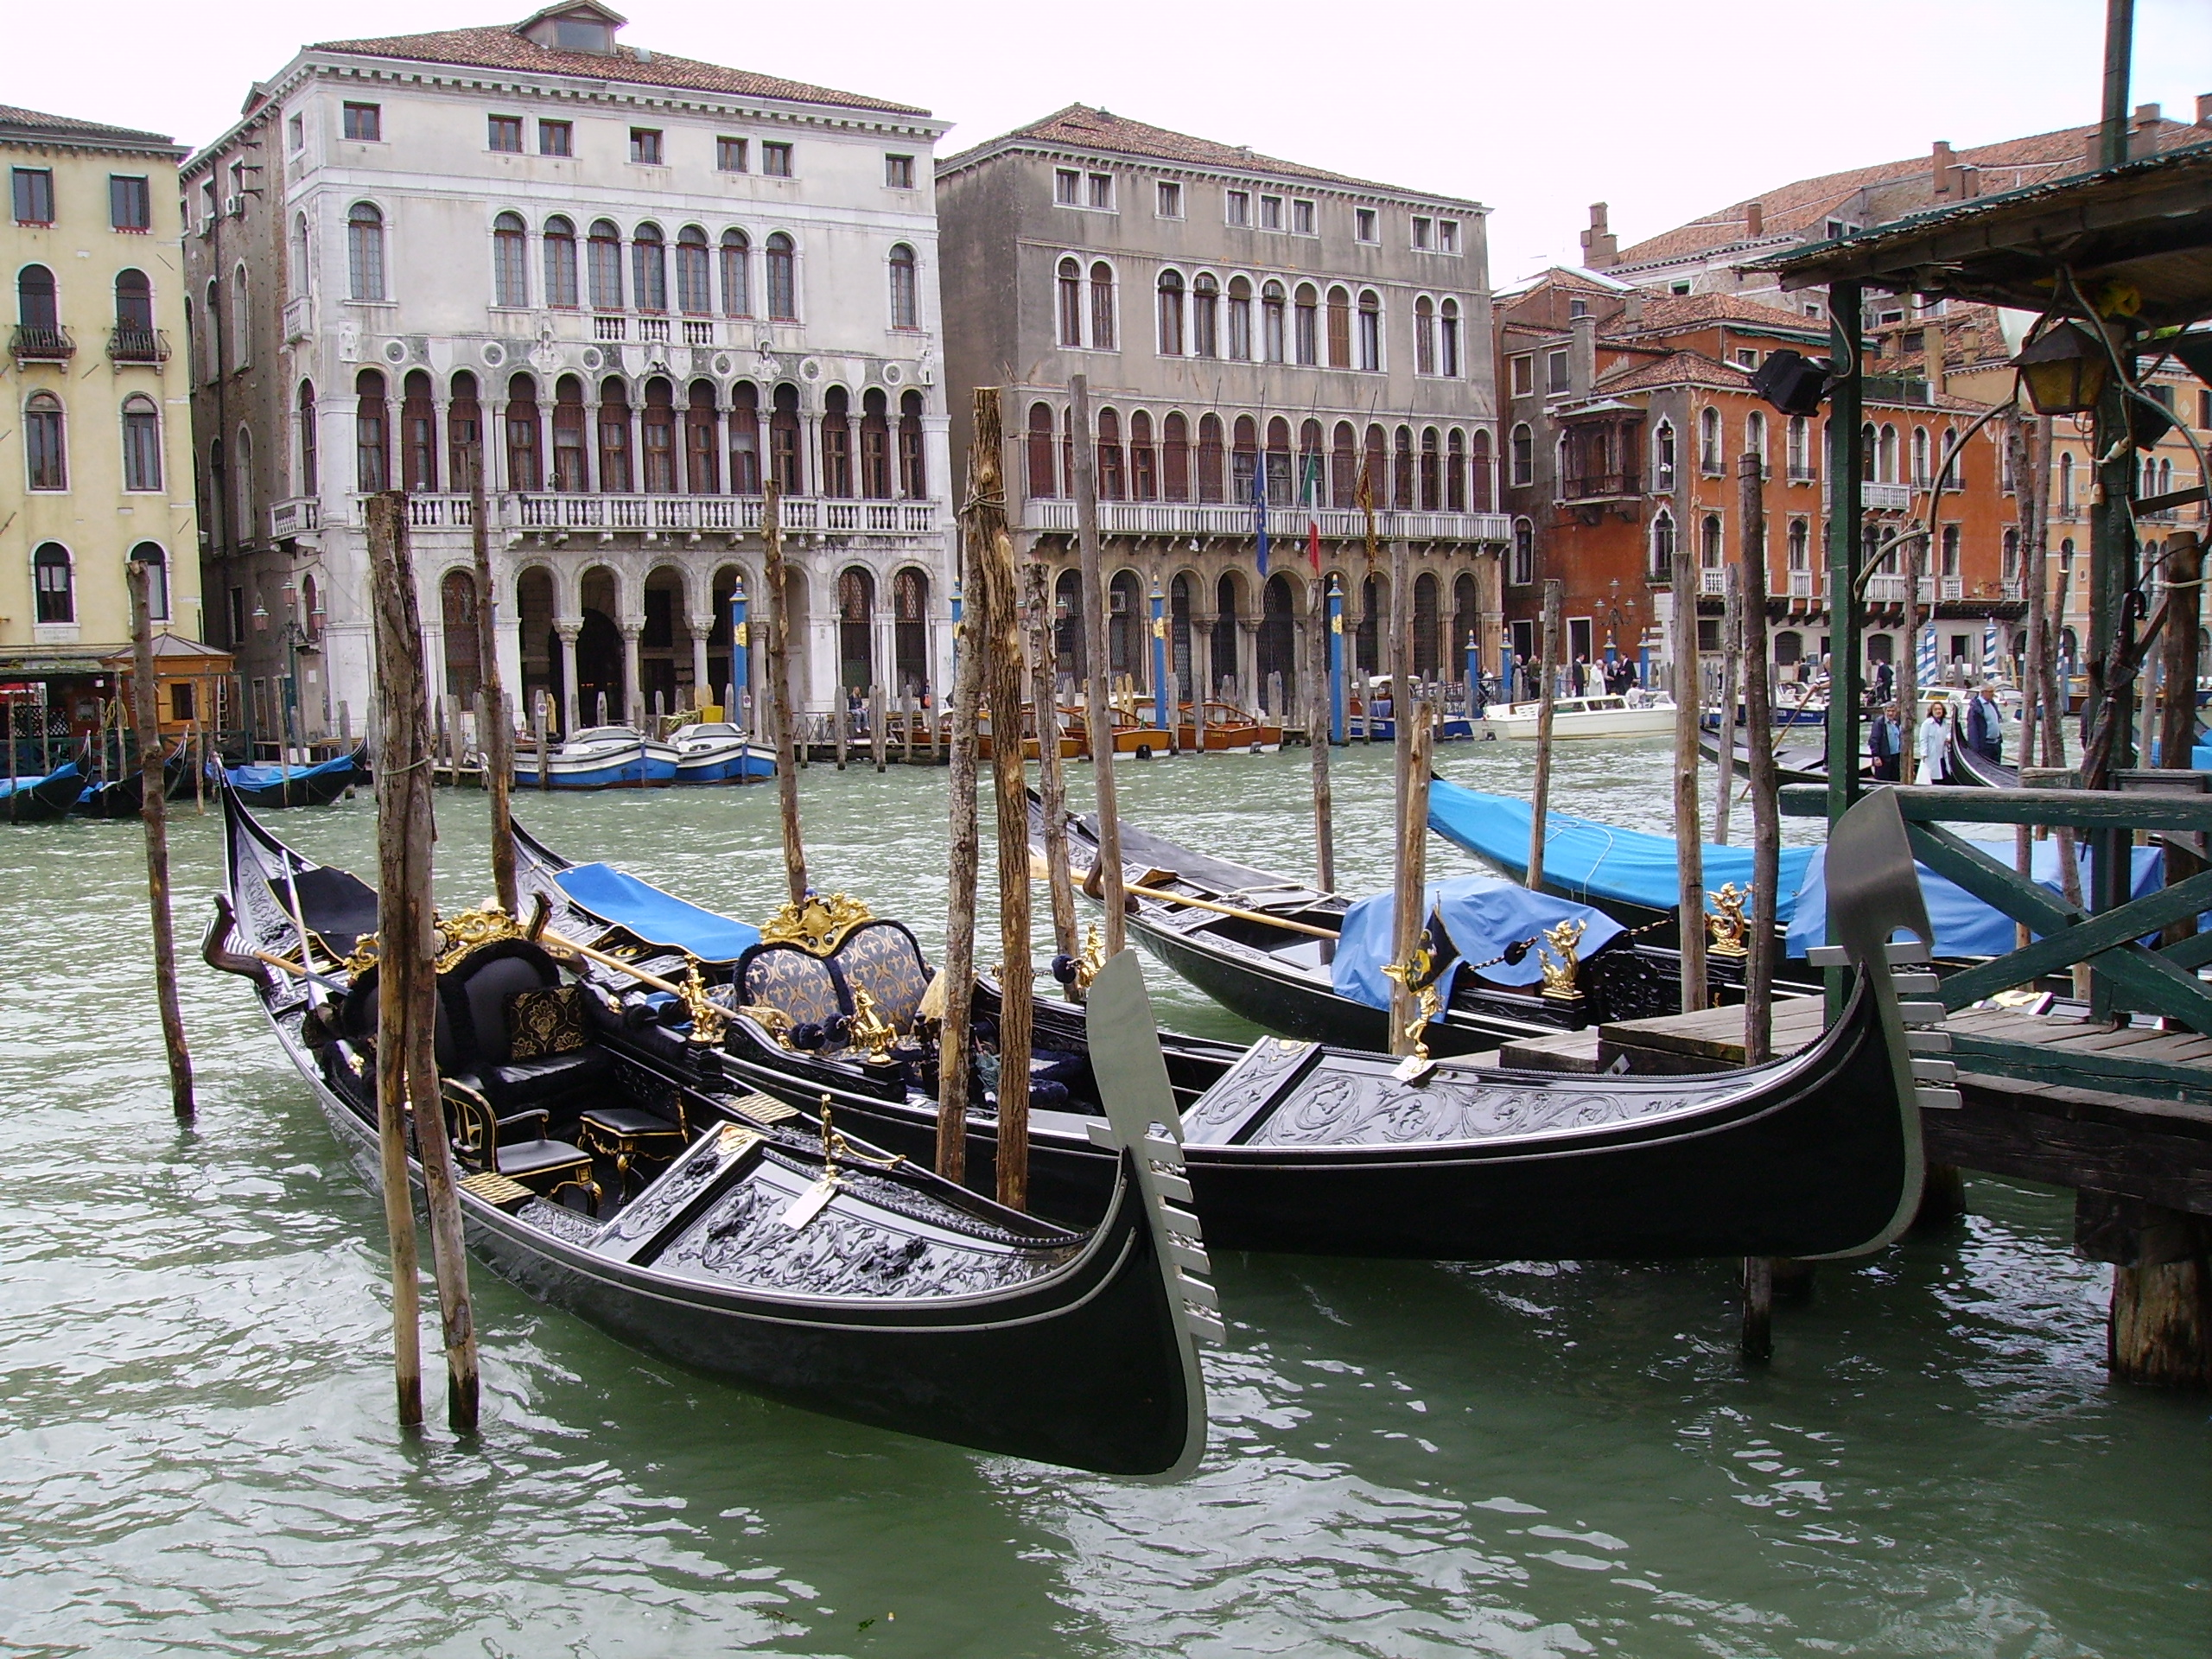 Grand Canal Venice Images File:grand Canal-venice.jpg